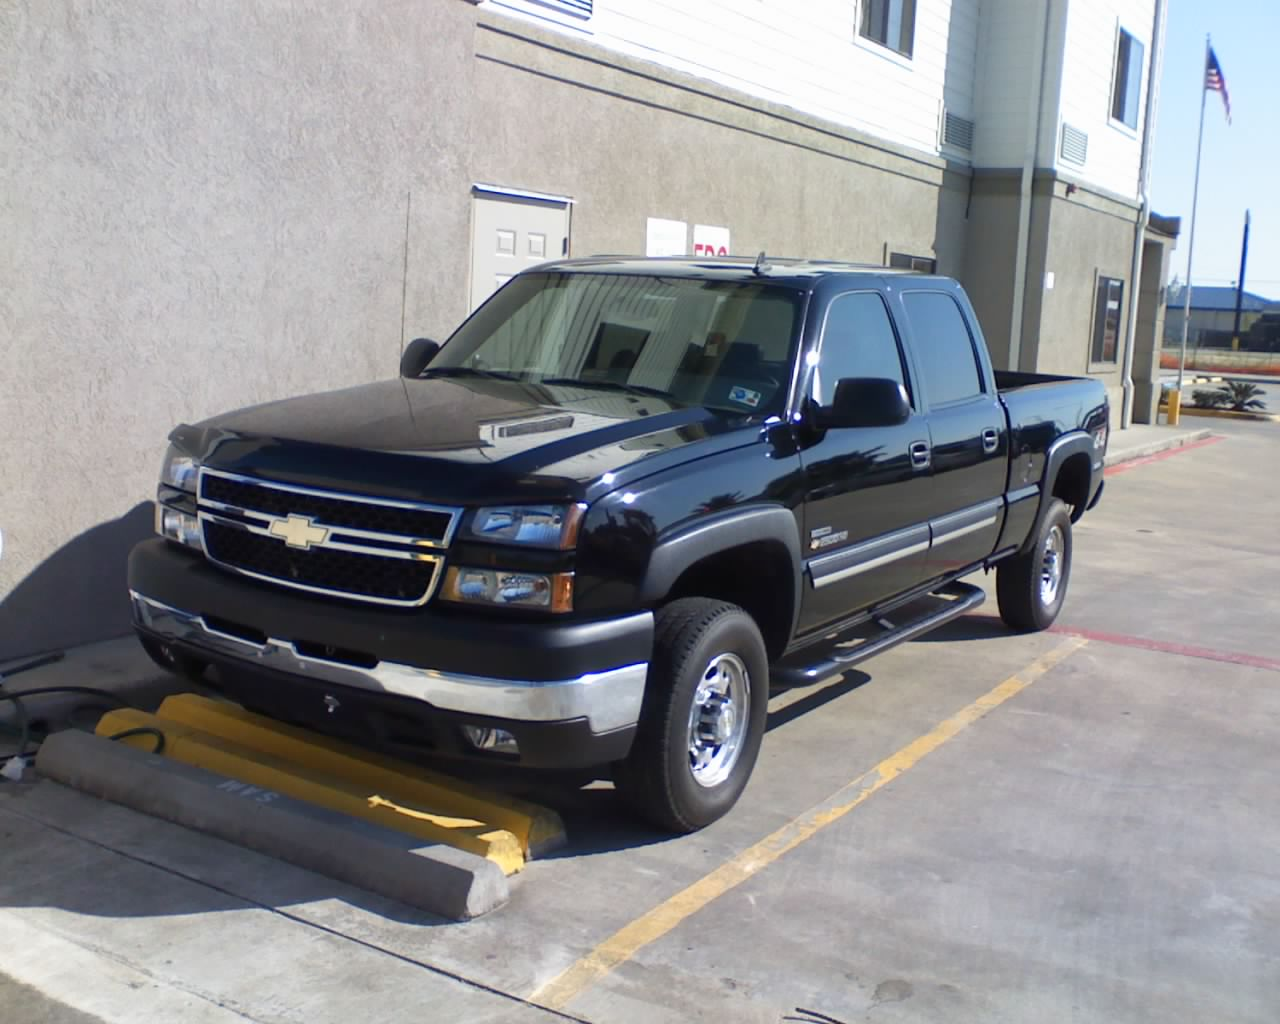 2007 chevrolet silverado classic 2500hd overview cargurus. Cars Review. Best American Auto & Cars Review